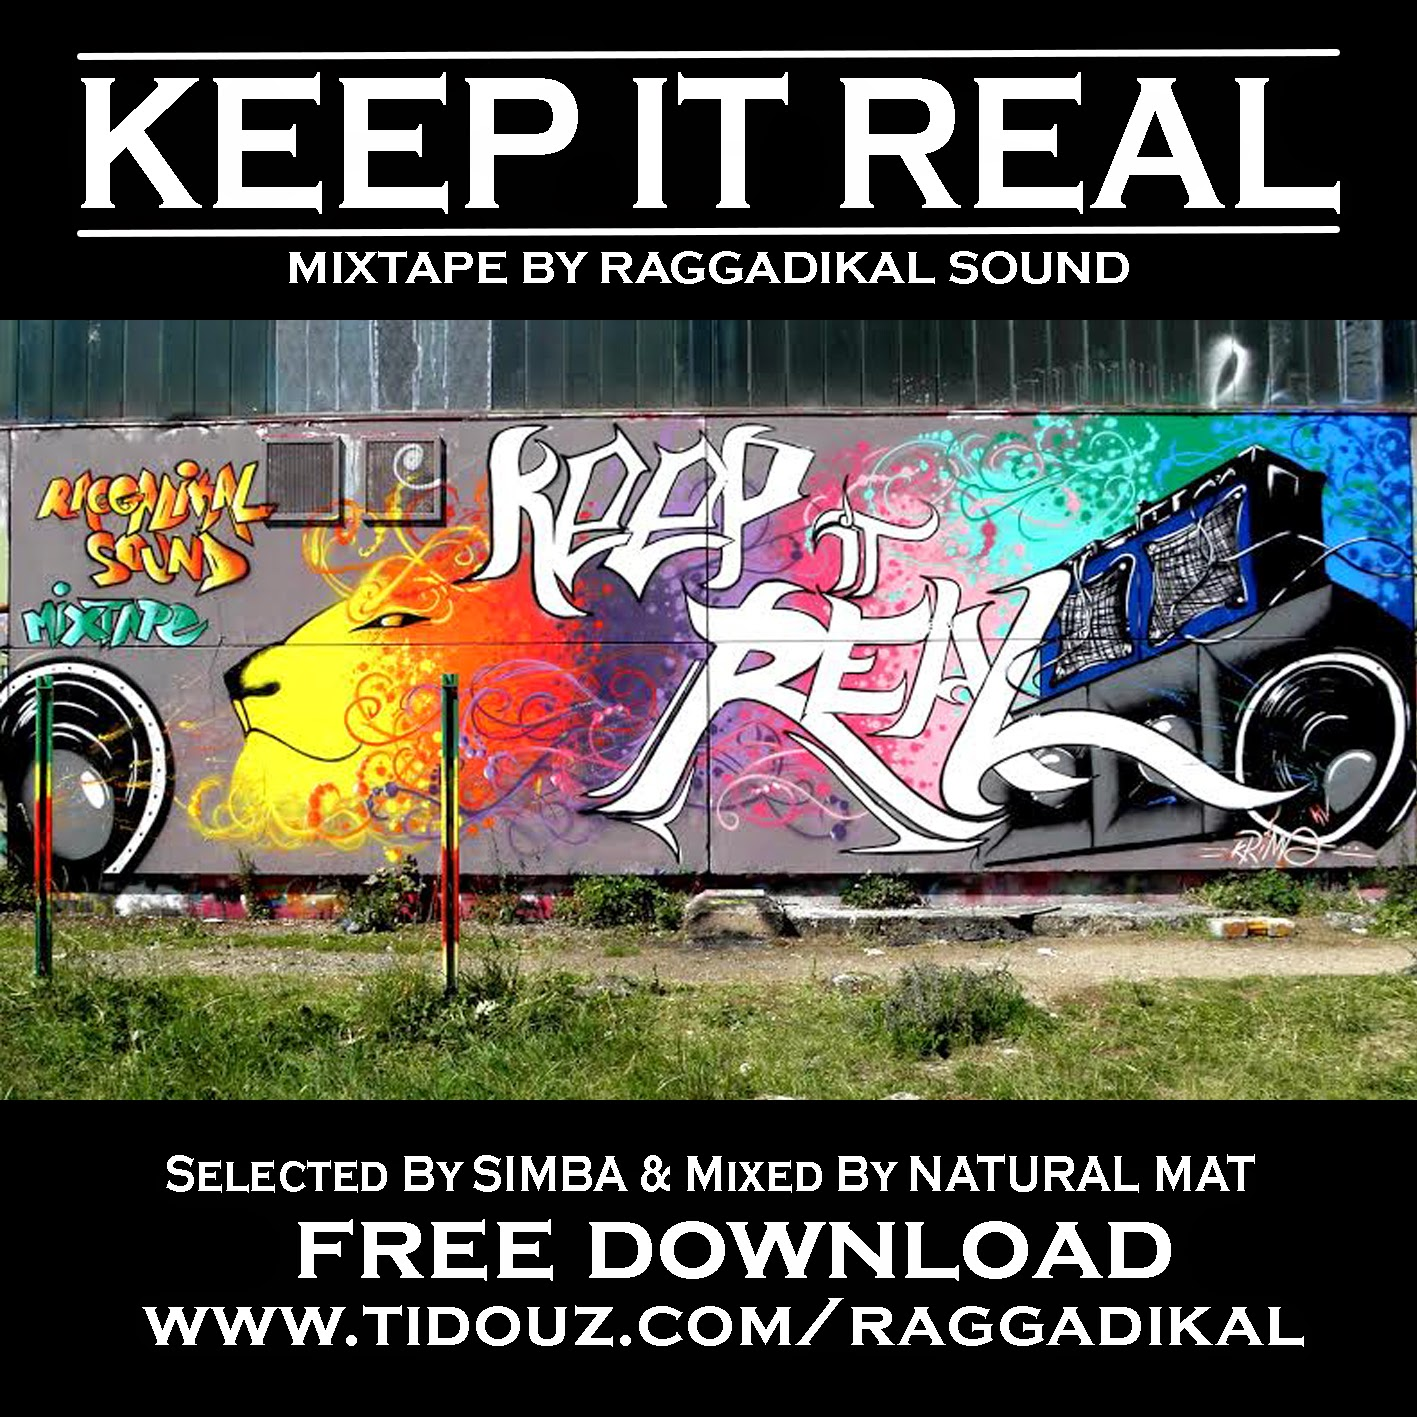 Just Spread Reggae Vibes by Simba